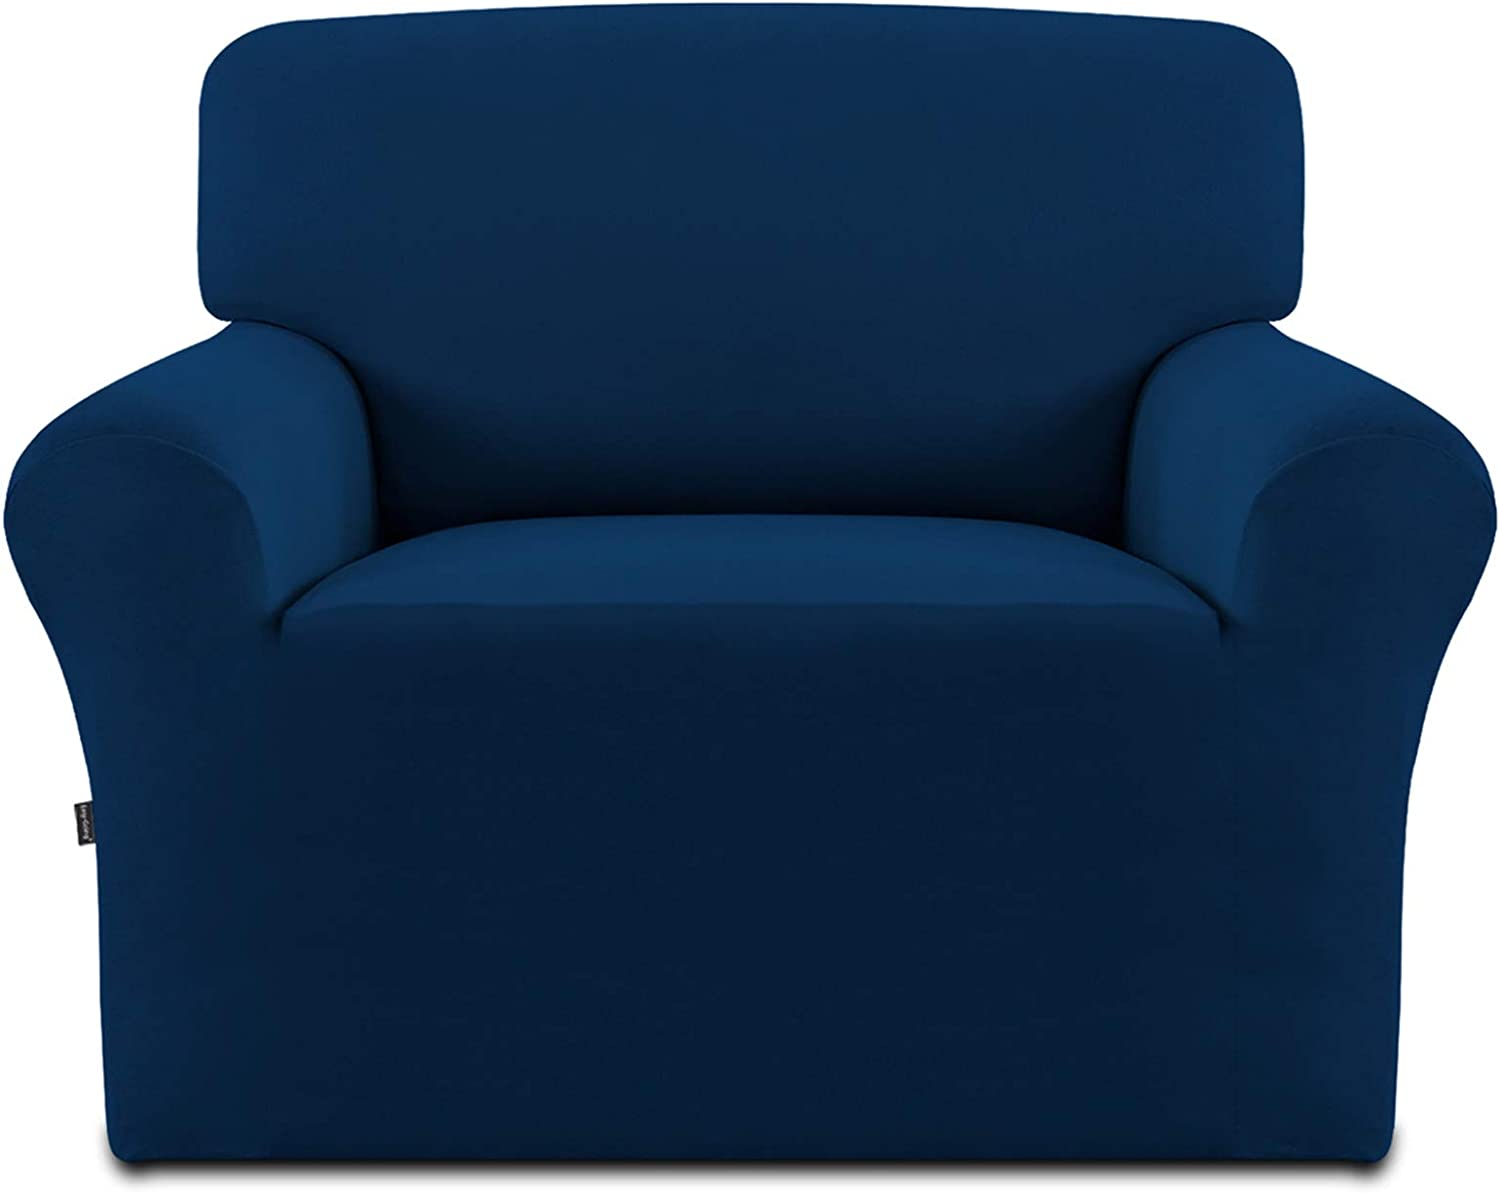 Easy-Going Fleece Stretch Sofa Slipcover – Spandex Anti-Slip Soft Couch Sofa Cover, Washable Furniture Protector with Anti-Skid Foam and Elastic Bottom for Kids, Pets(Chair,Navy